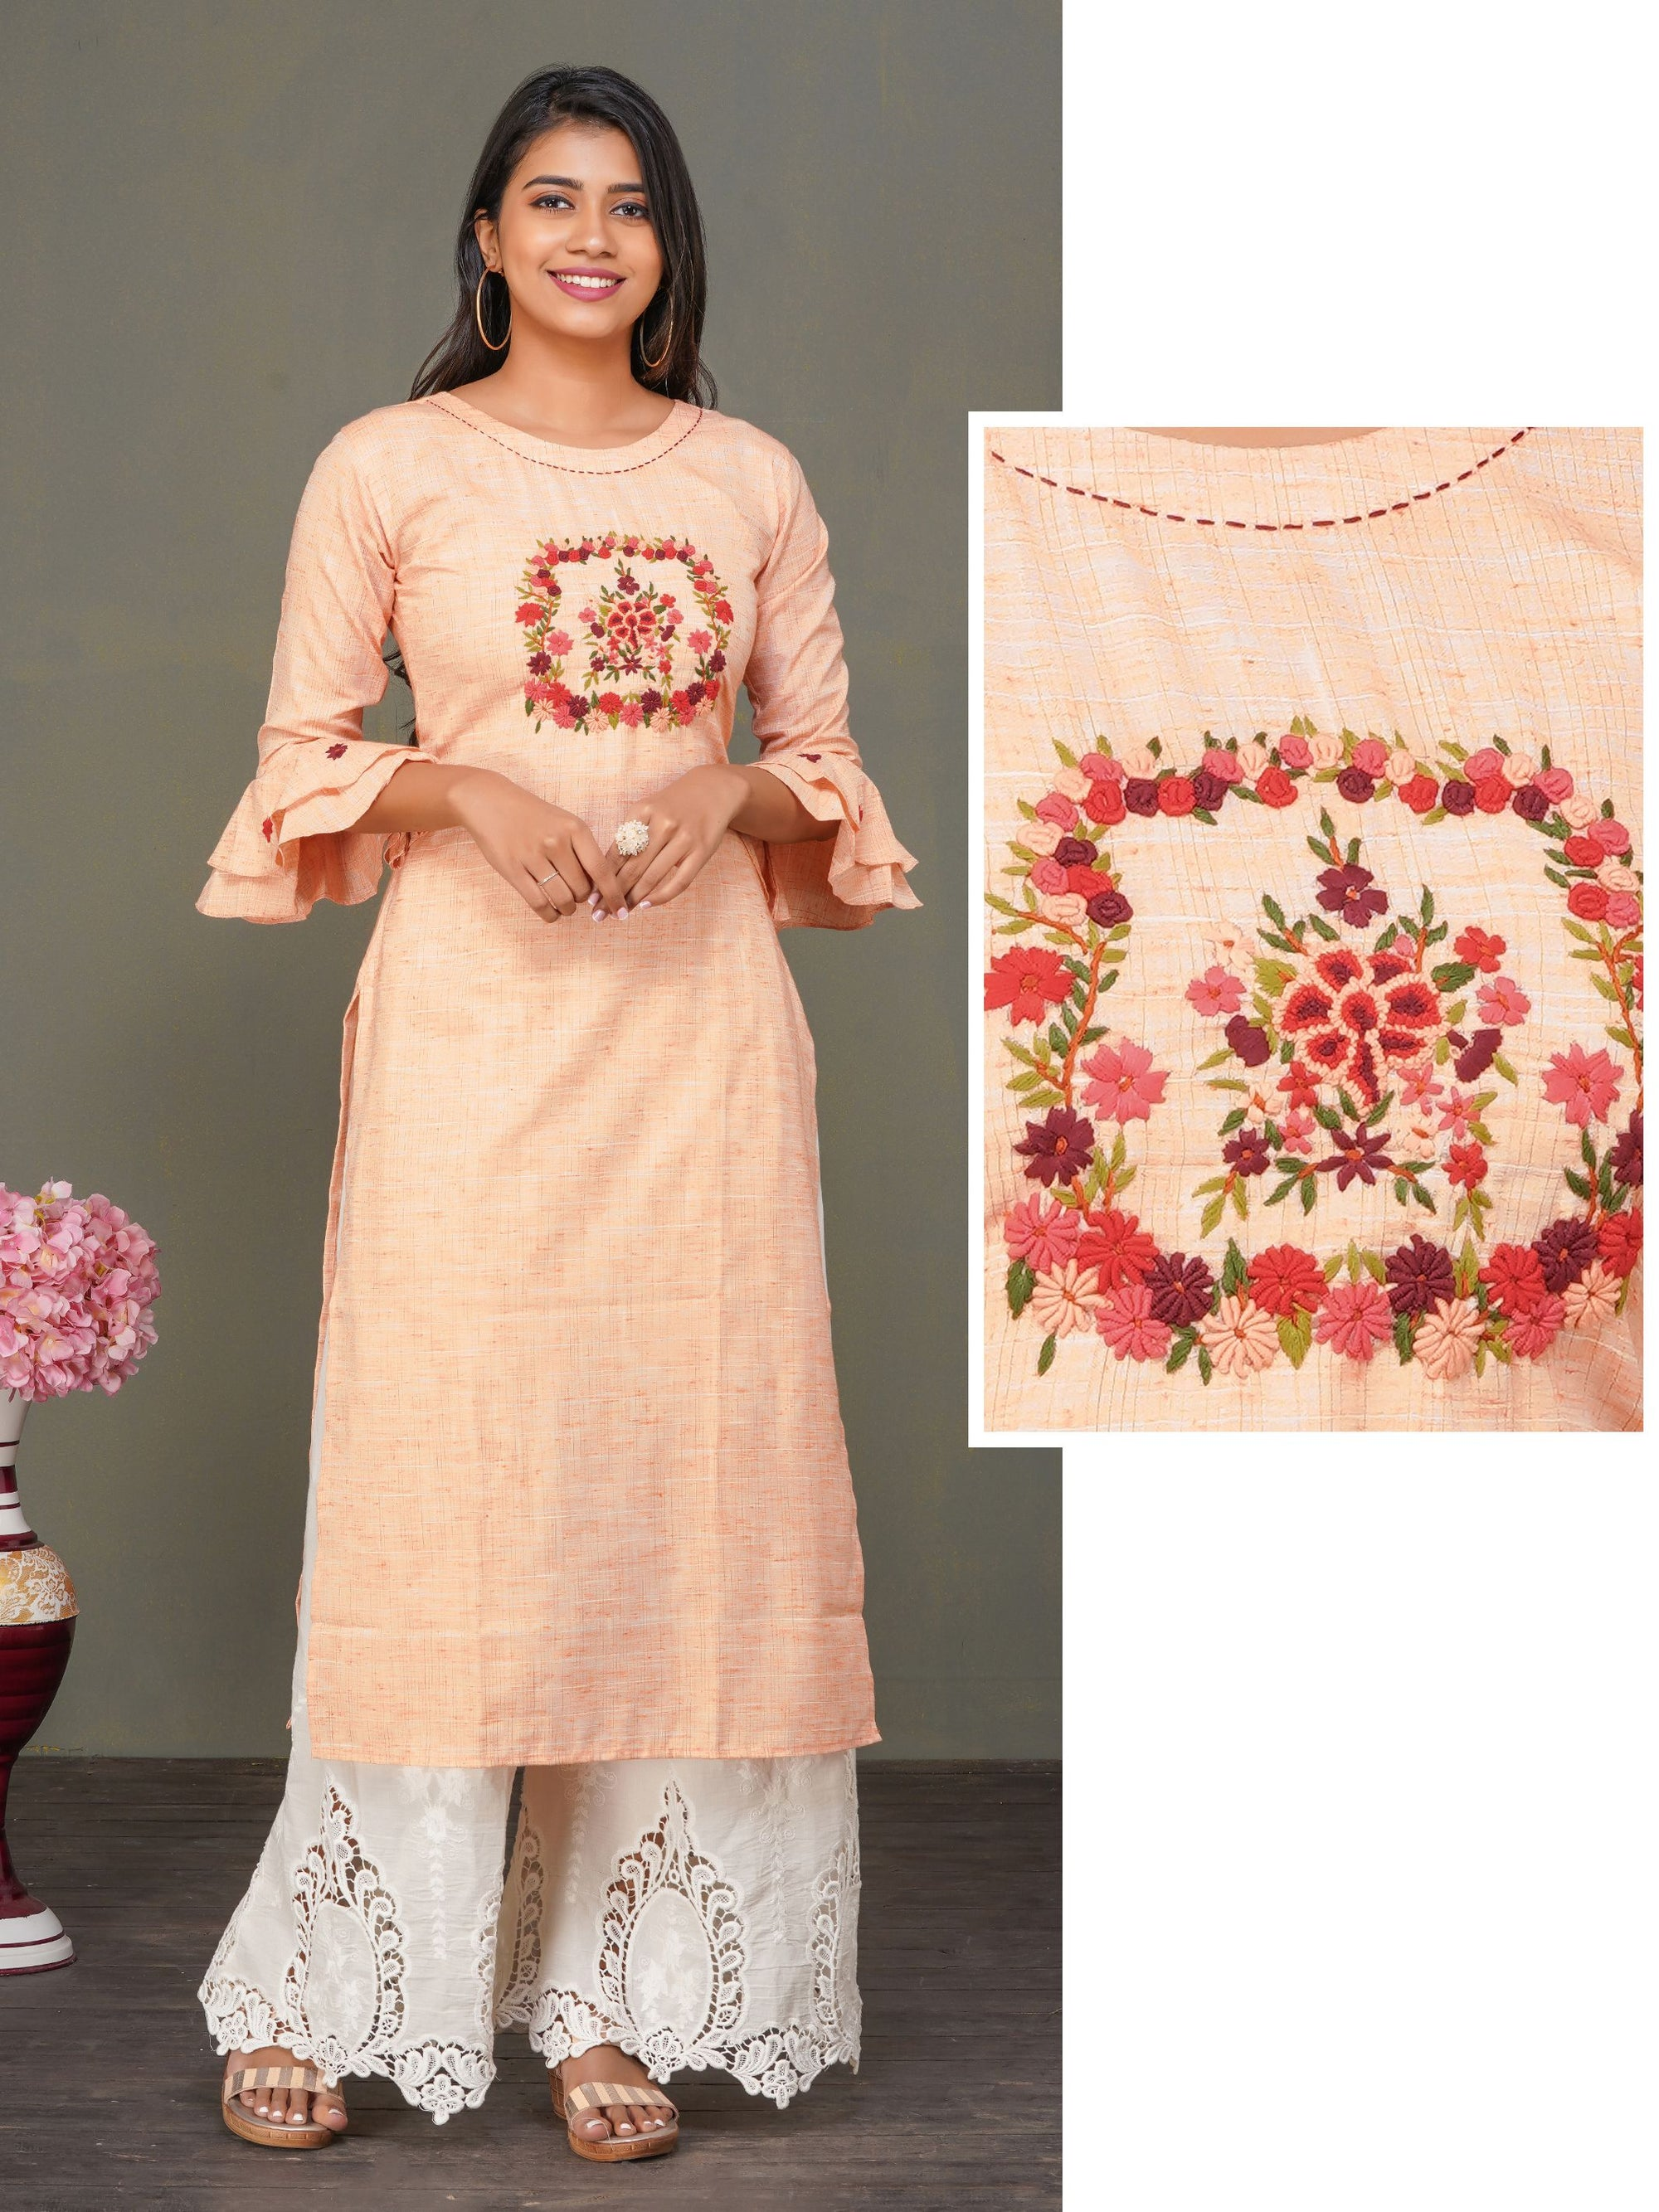 Bullion Knot Floral Embroidered Kurti - Peach